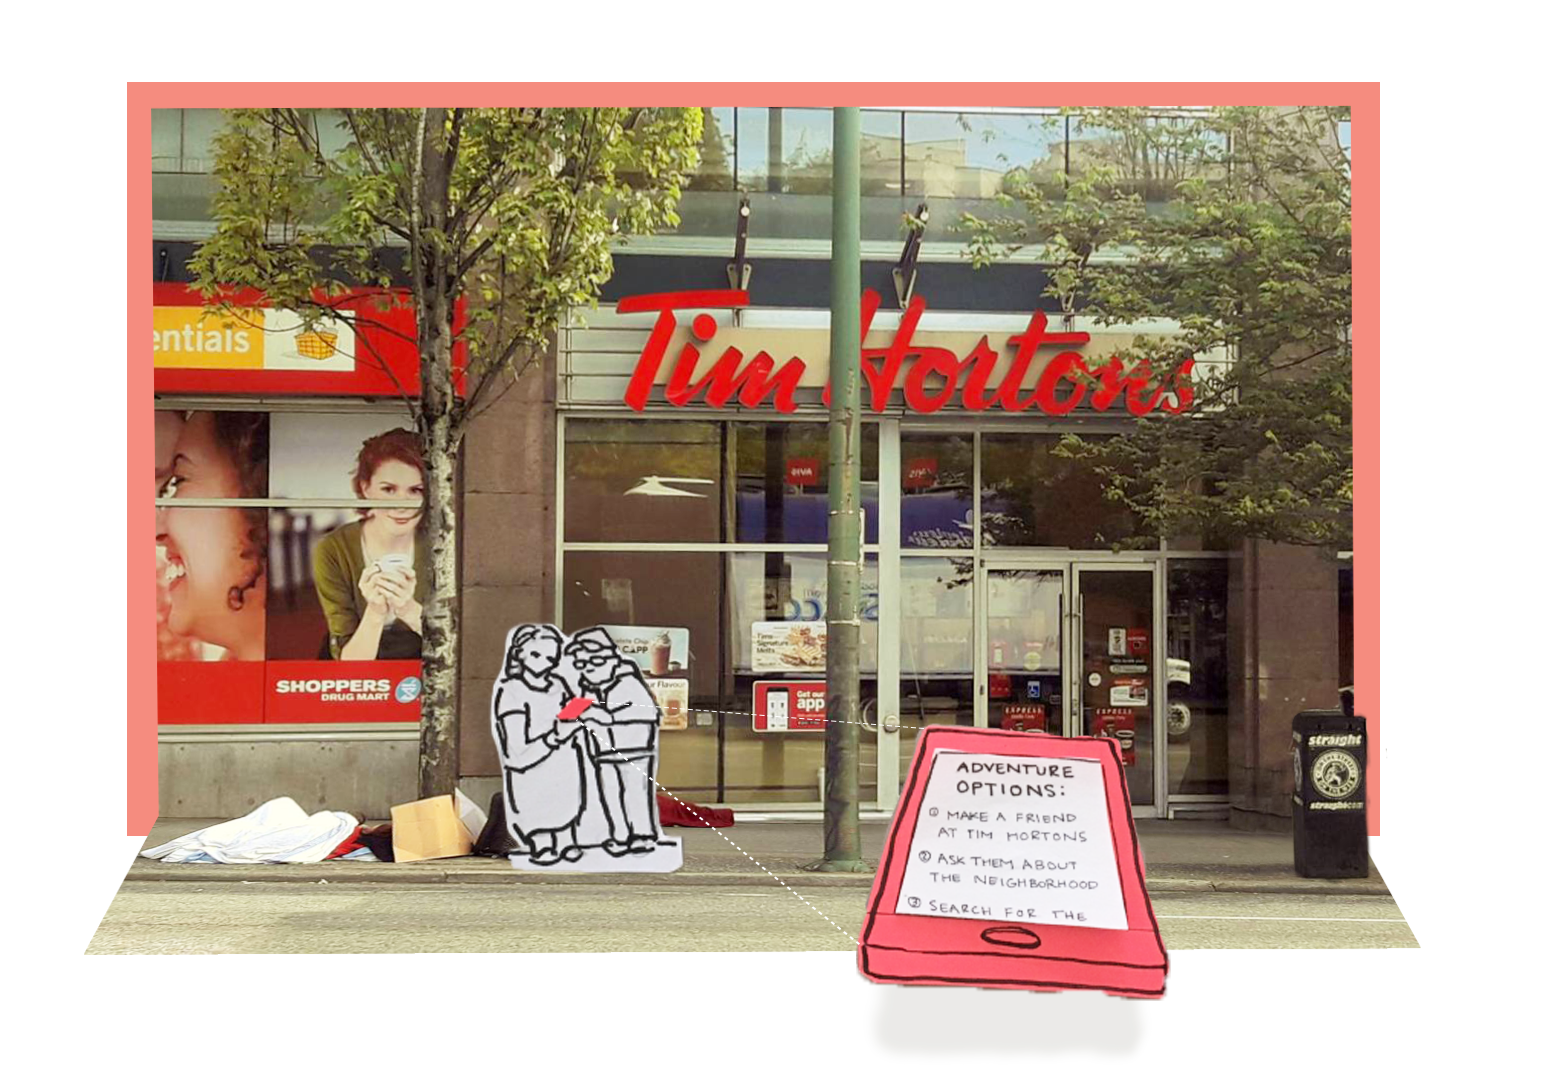 """Popup-scene Two people in front of a Tim Hortons. Their phone screen reads: """"Adventure Options 1. Make a friend at Tim Hortons 2. Ask them about the neighbourhood 3.search for the...(message is cut off)"""